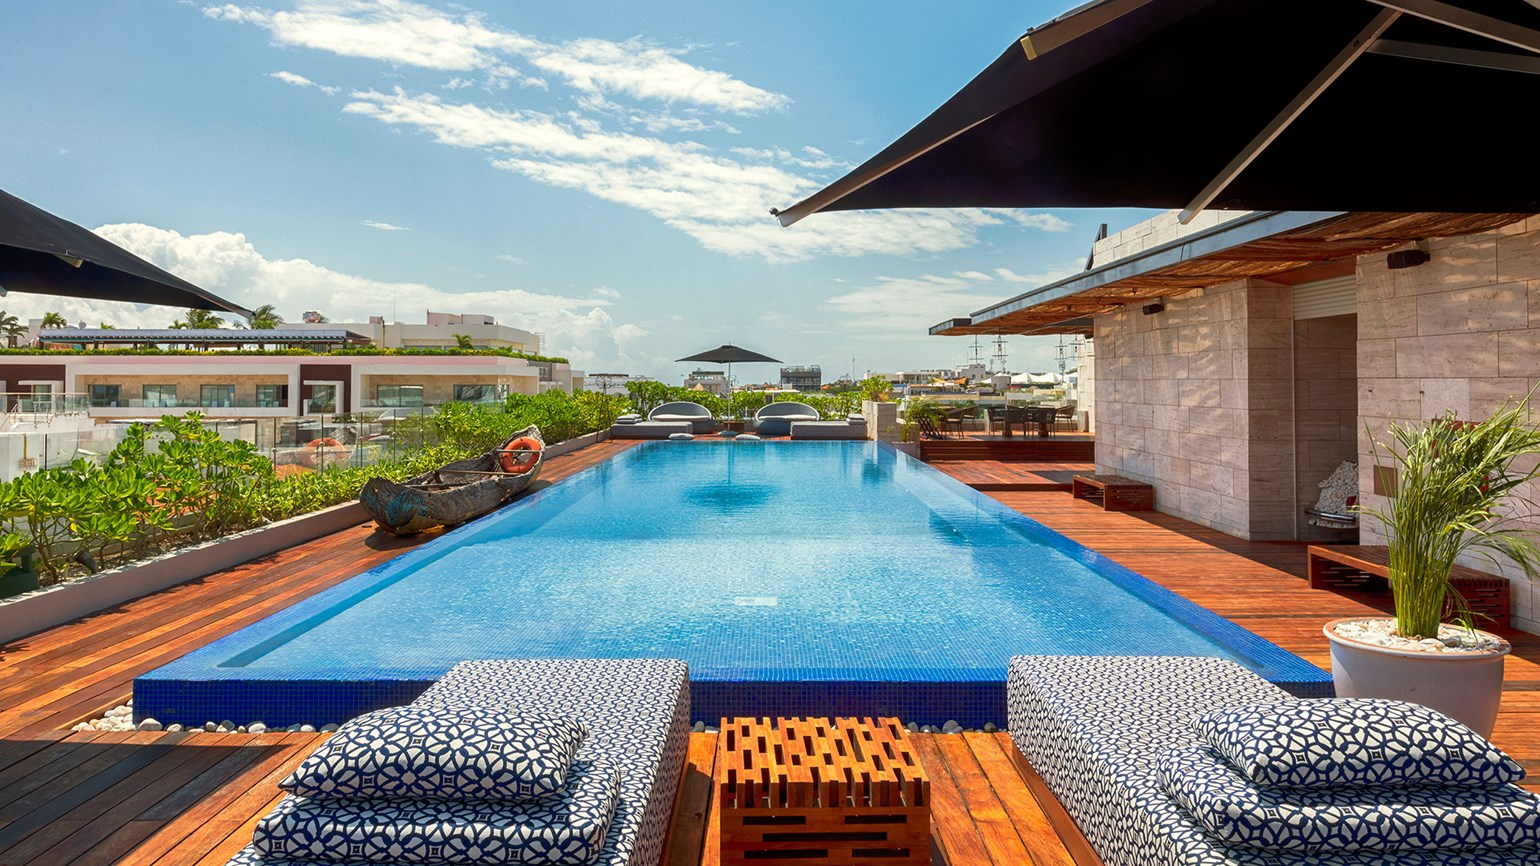 Hilton opens Yucatan Resort Playa del Carmen, in partnership with Playa